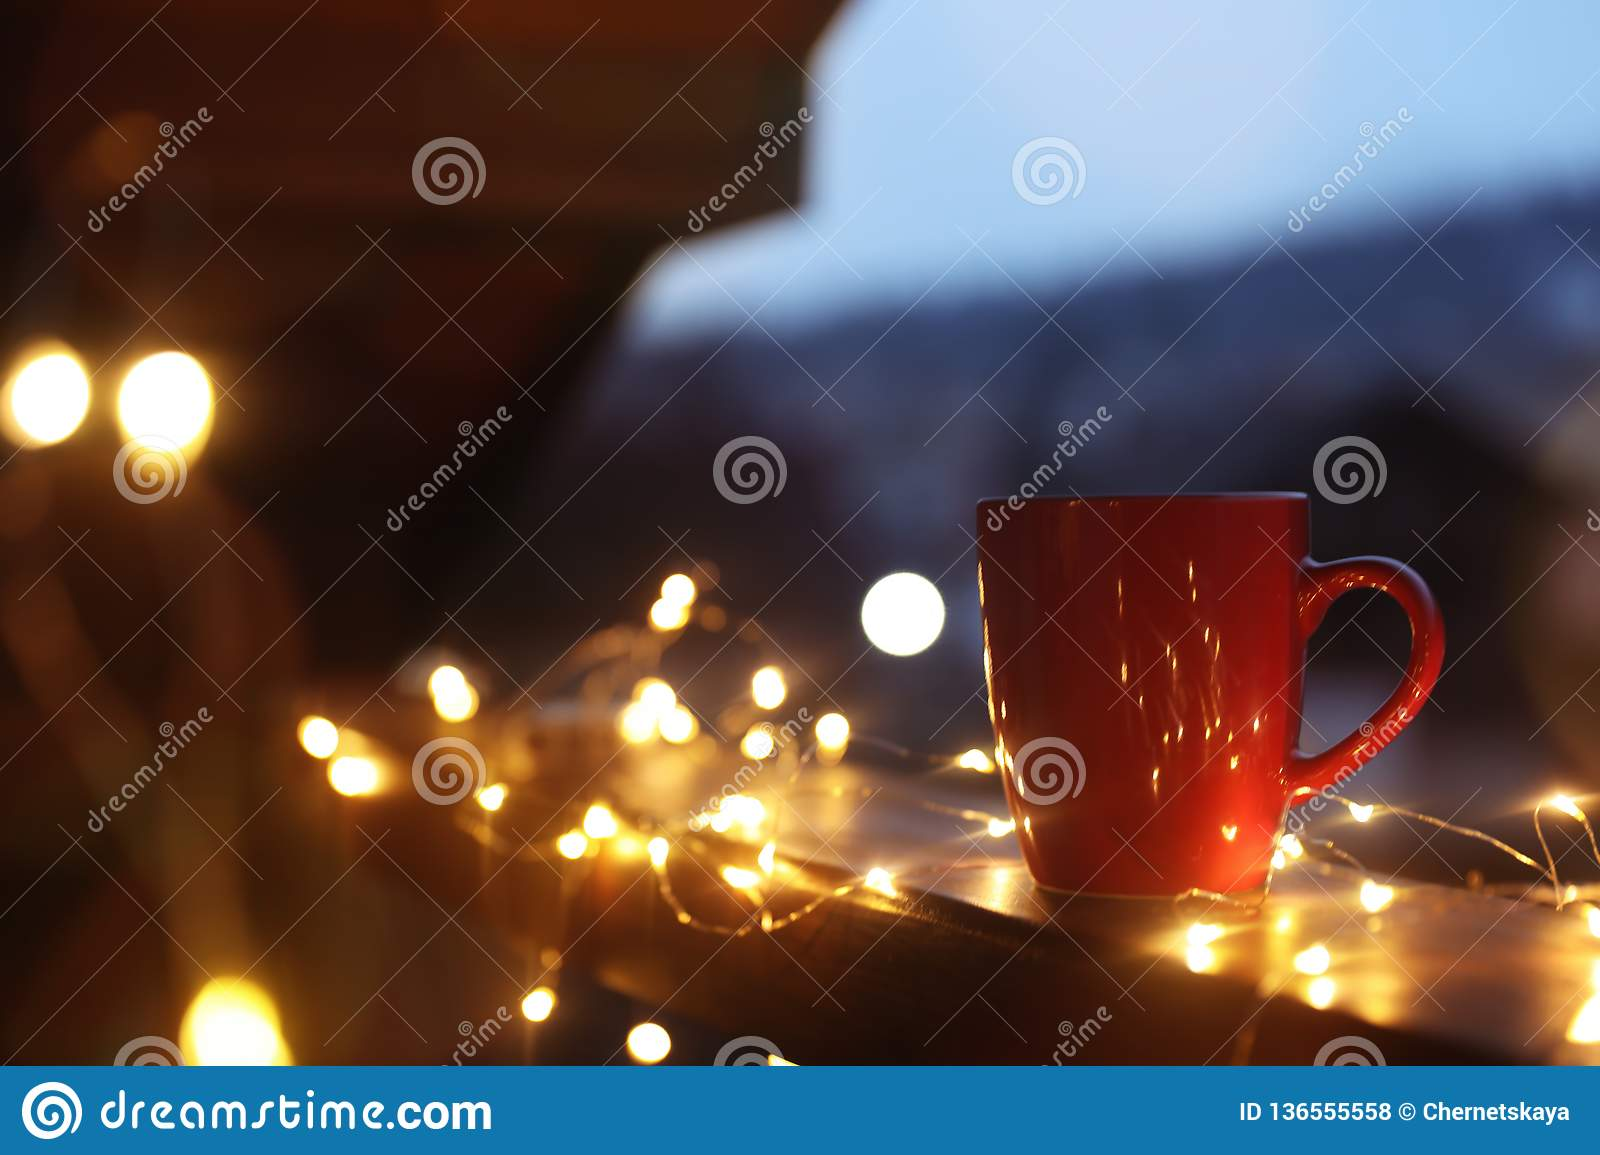 Cup of hot beverage on balcony railing decorated with Christmas lights, space for text. Winter